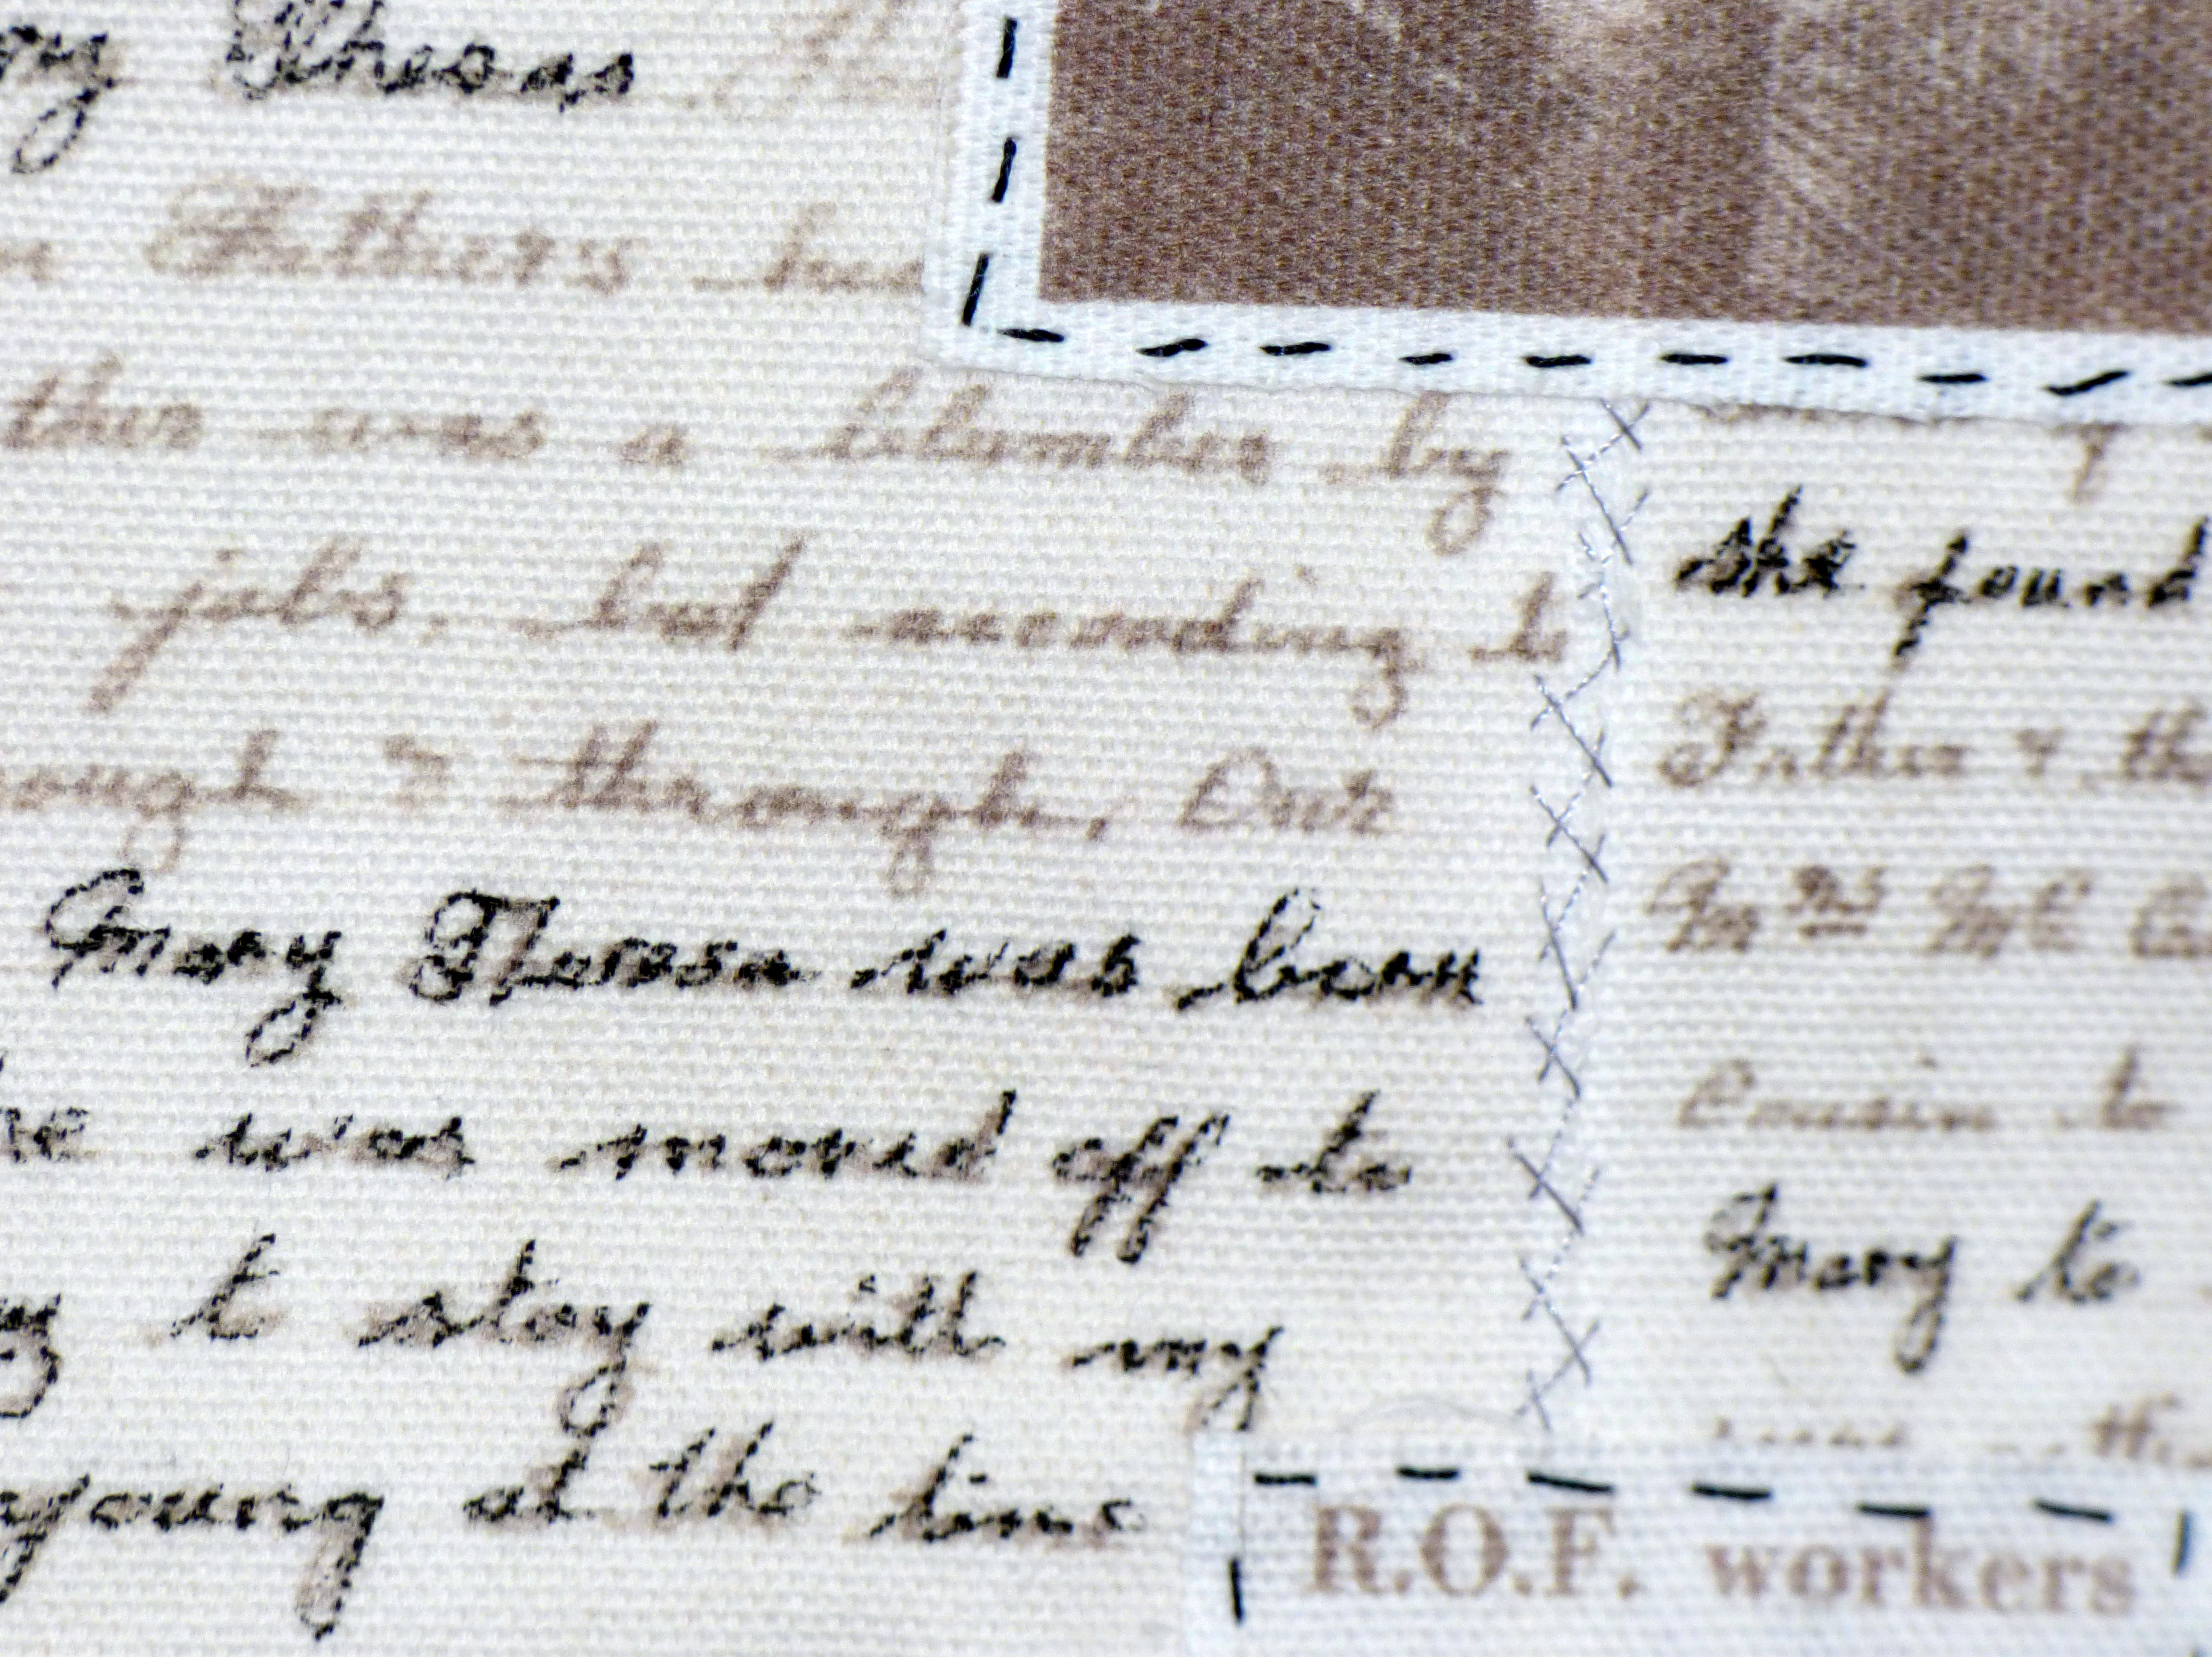 detail of NOTES FROM THE NOLANS by Angela McLarnon, Parbold EG